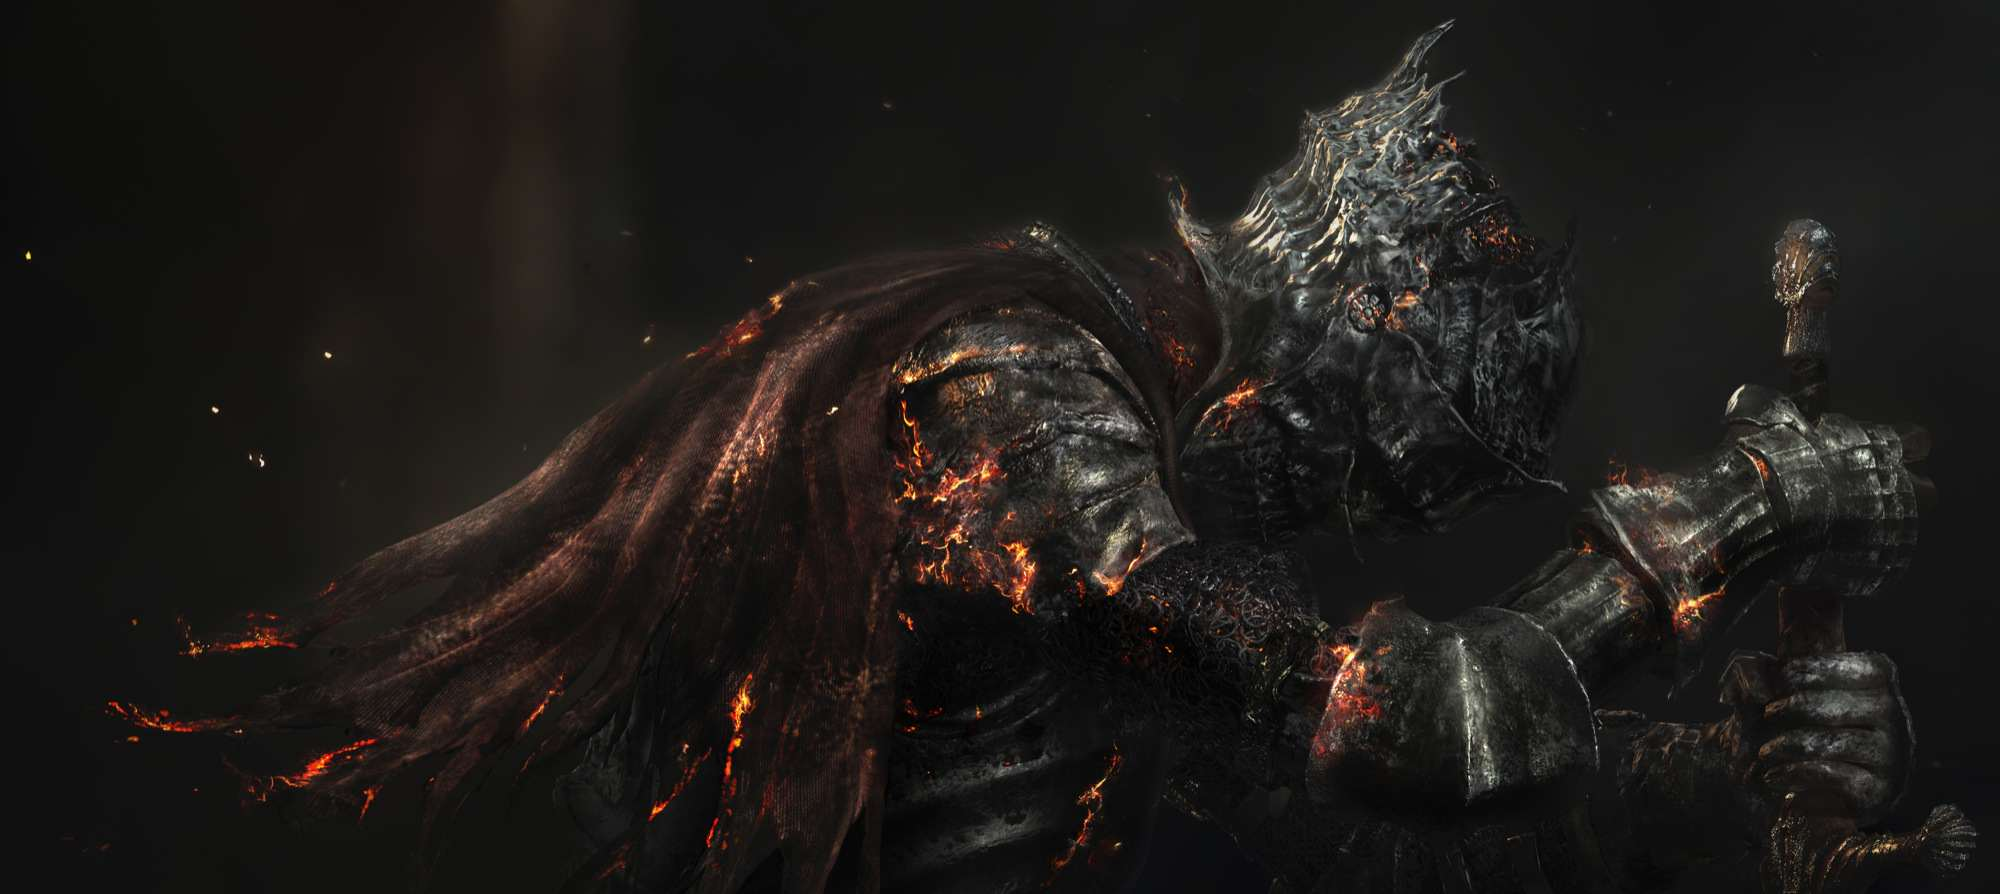 Namco Offers £6,905 To Anyone Who Can Explain Dark Souls Story 2885257 fdp artwork 003